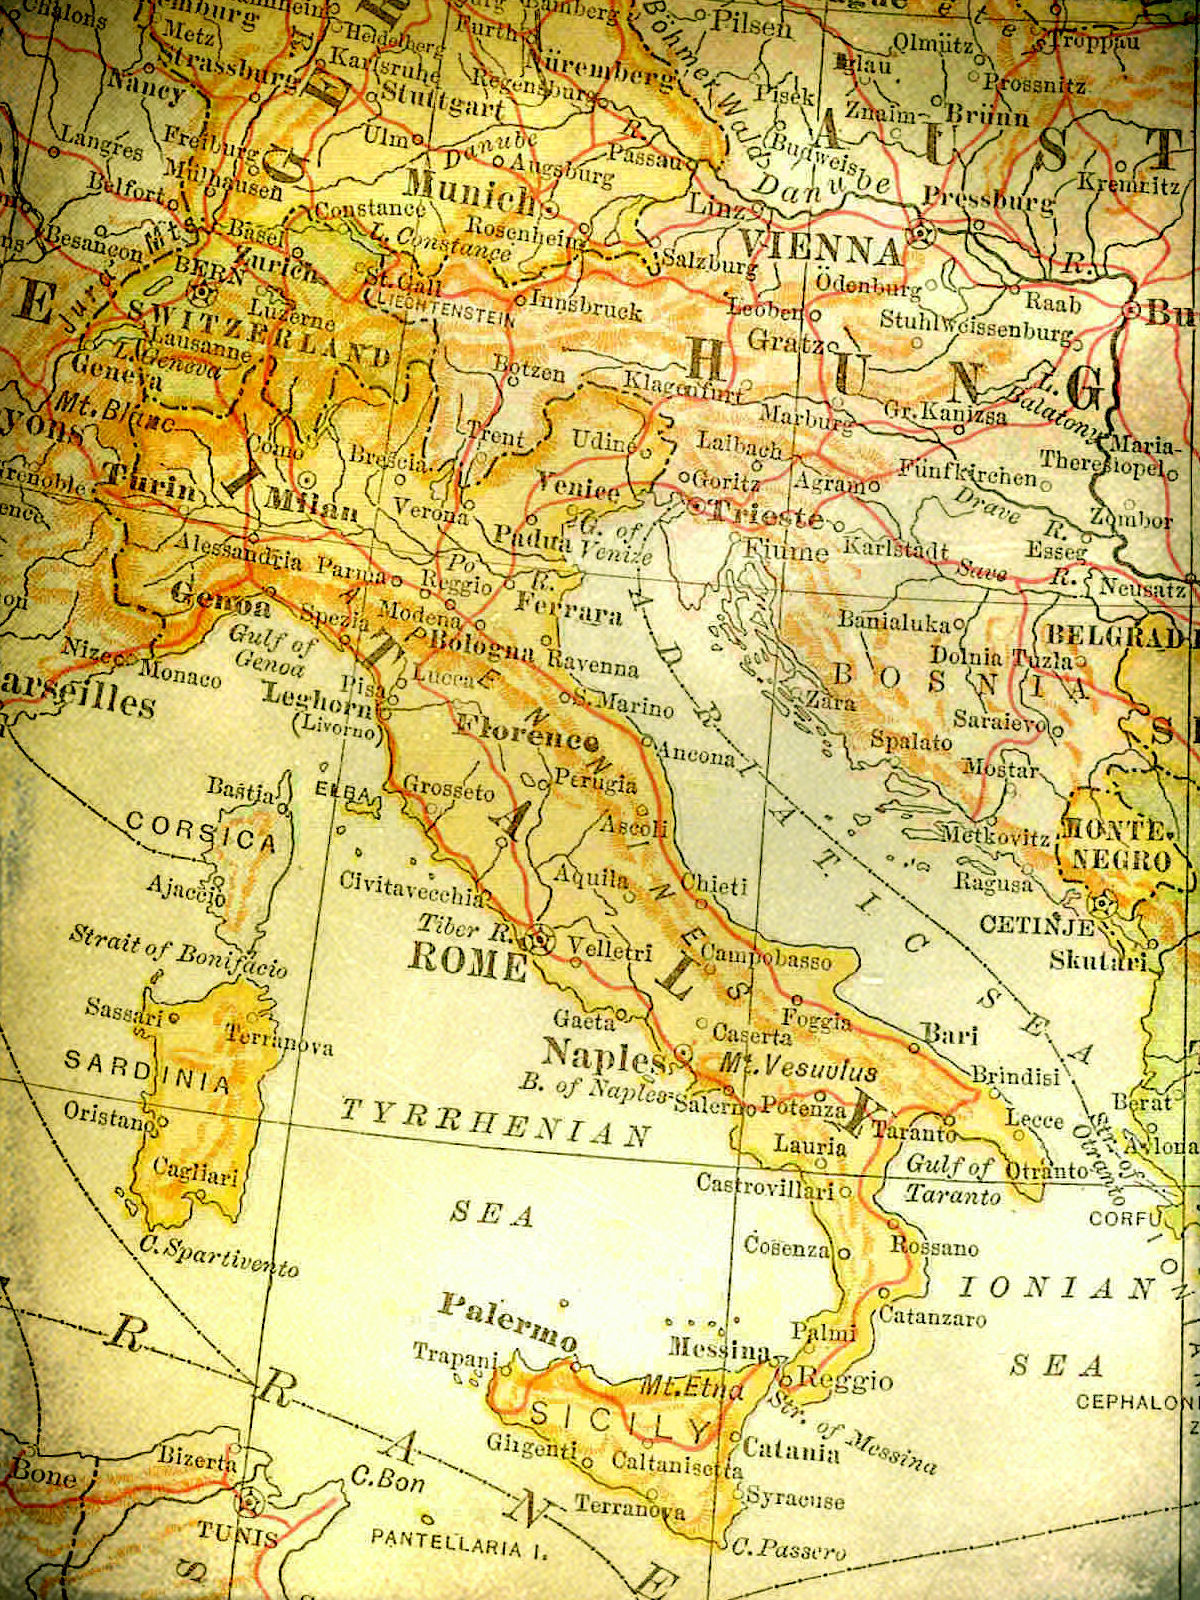 Antique images 2 digital background vintage map clip art of europe map images make great digital backgrounds these two pieces of map clip art are from a vintage world atlas and gazetteer ive enhanced these two images gumiabroncs Gallery